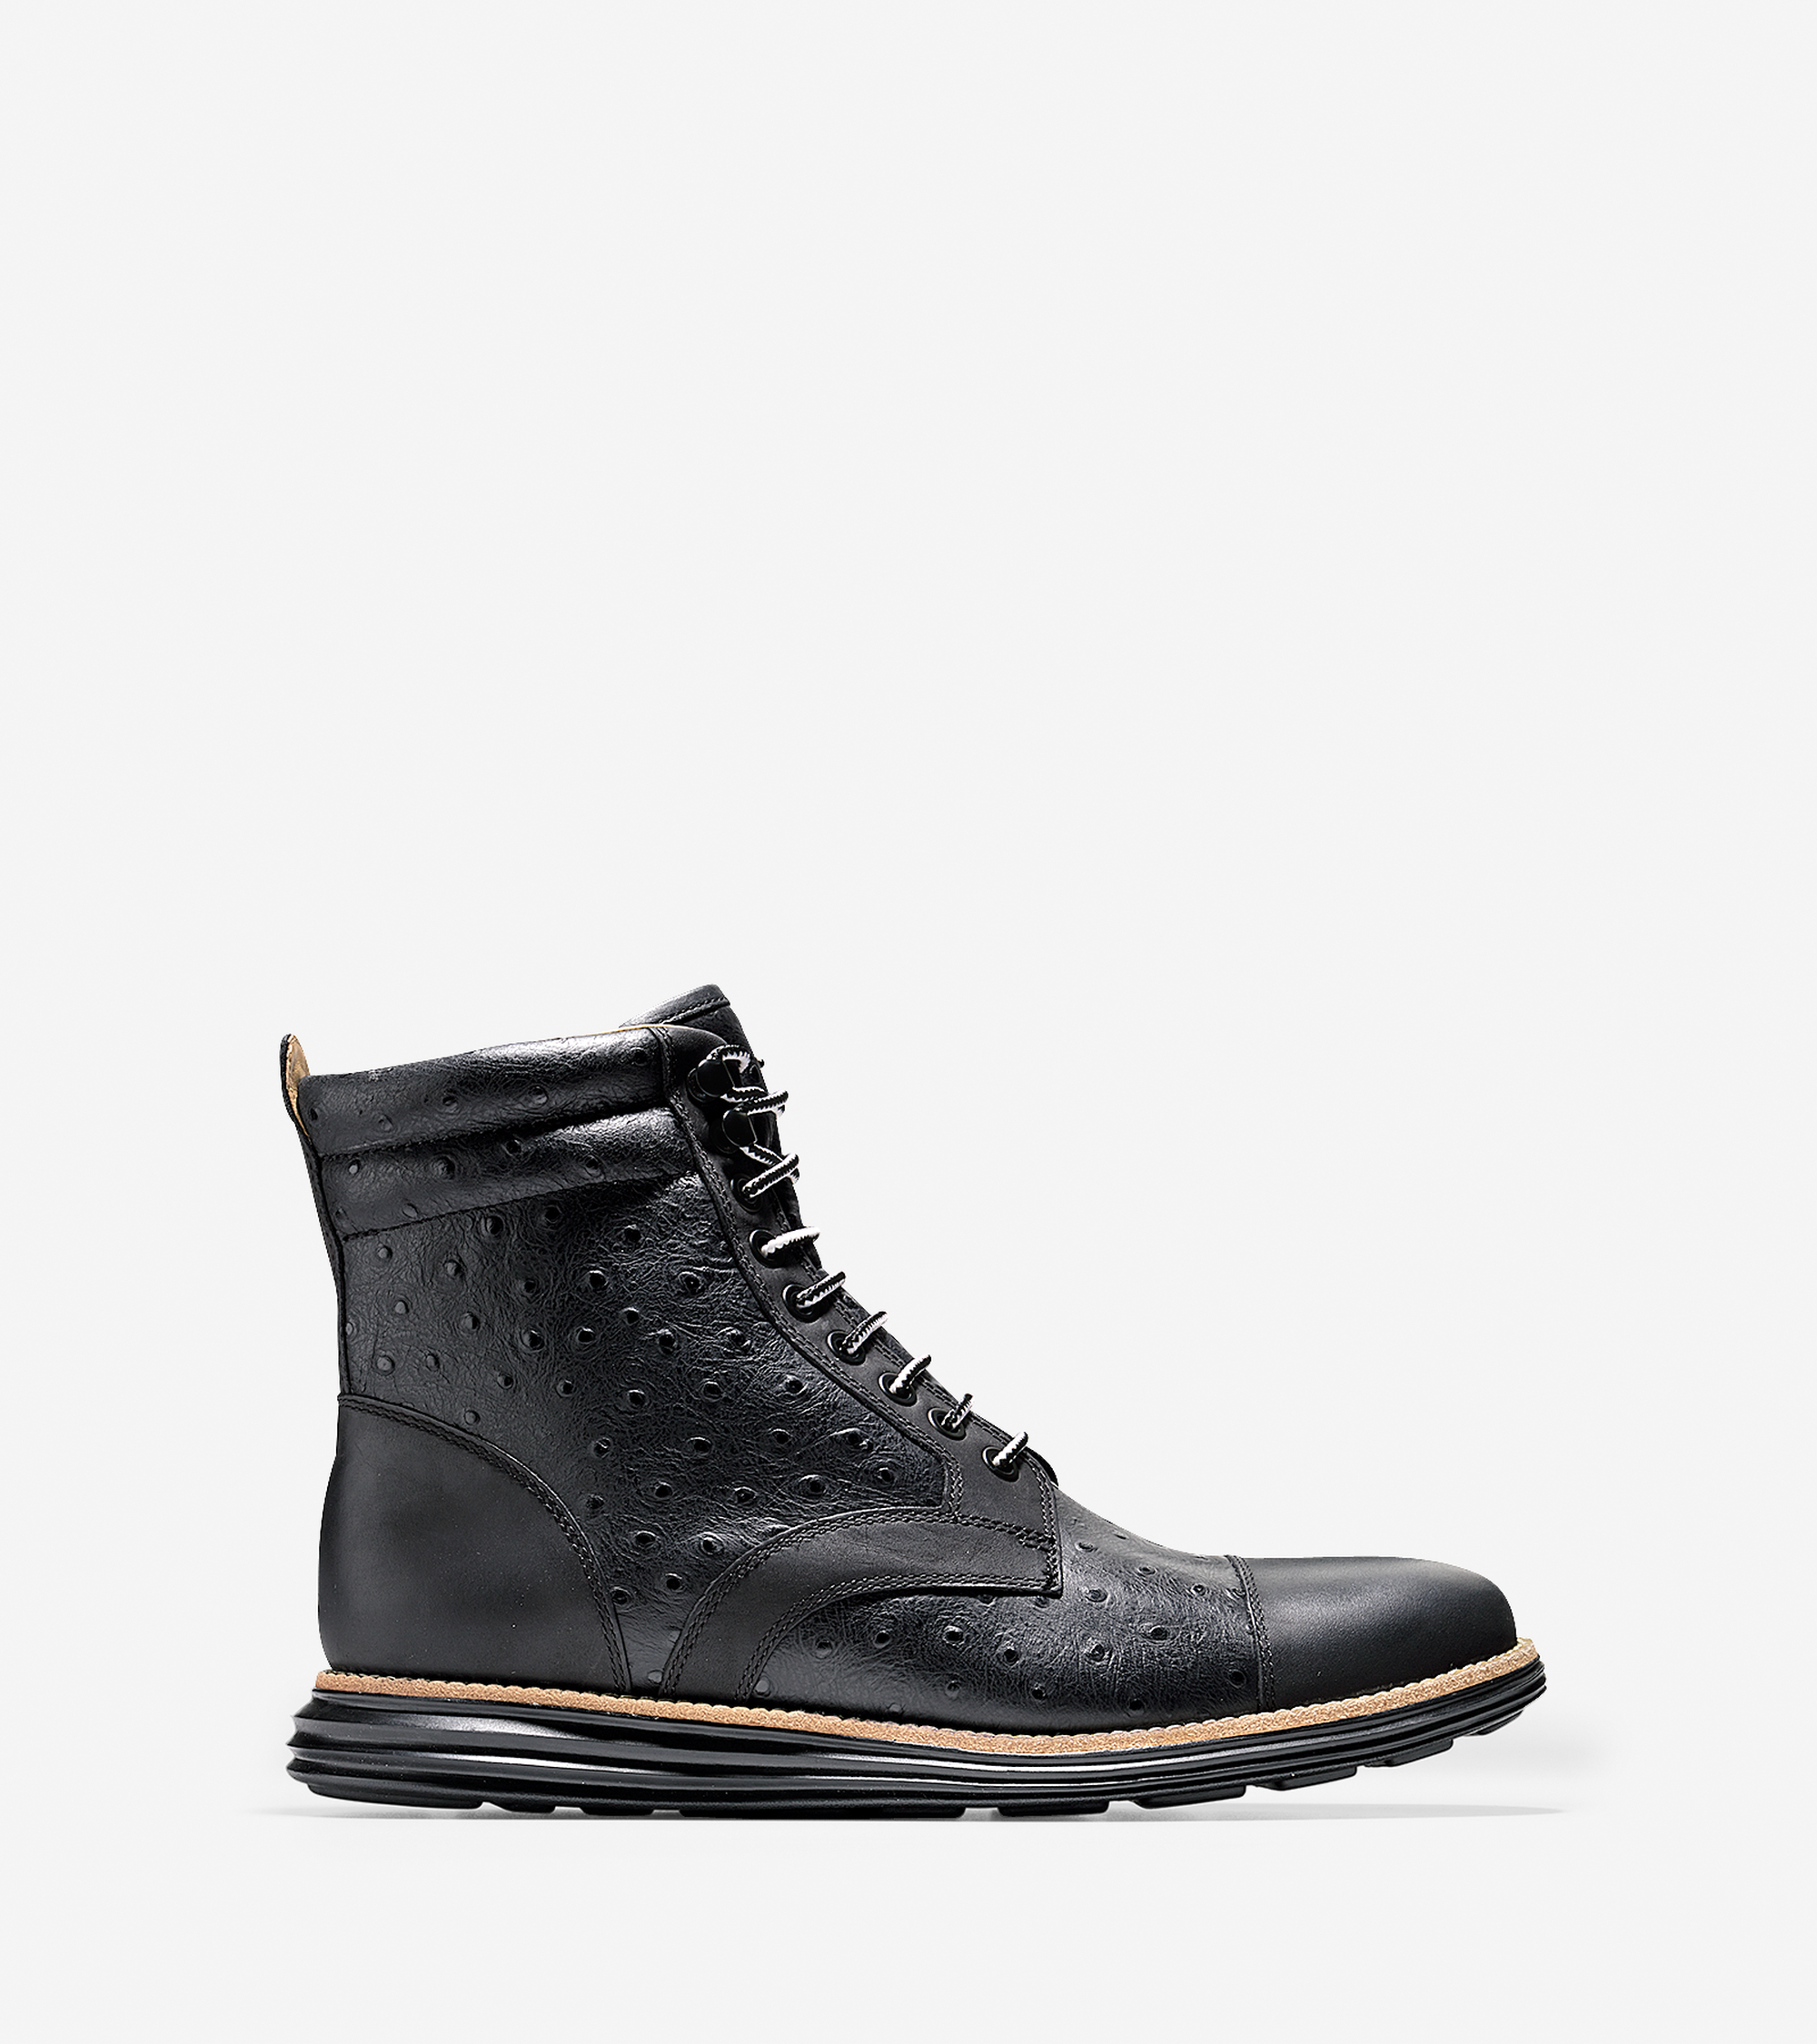 cole haan lunargrand padded collar lace boot in black for